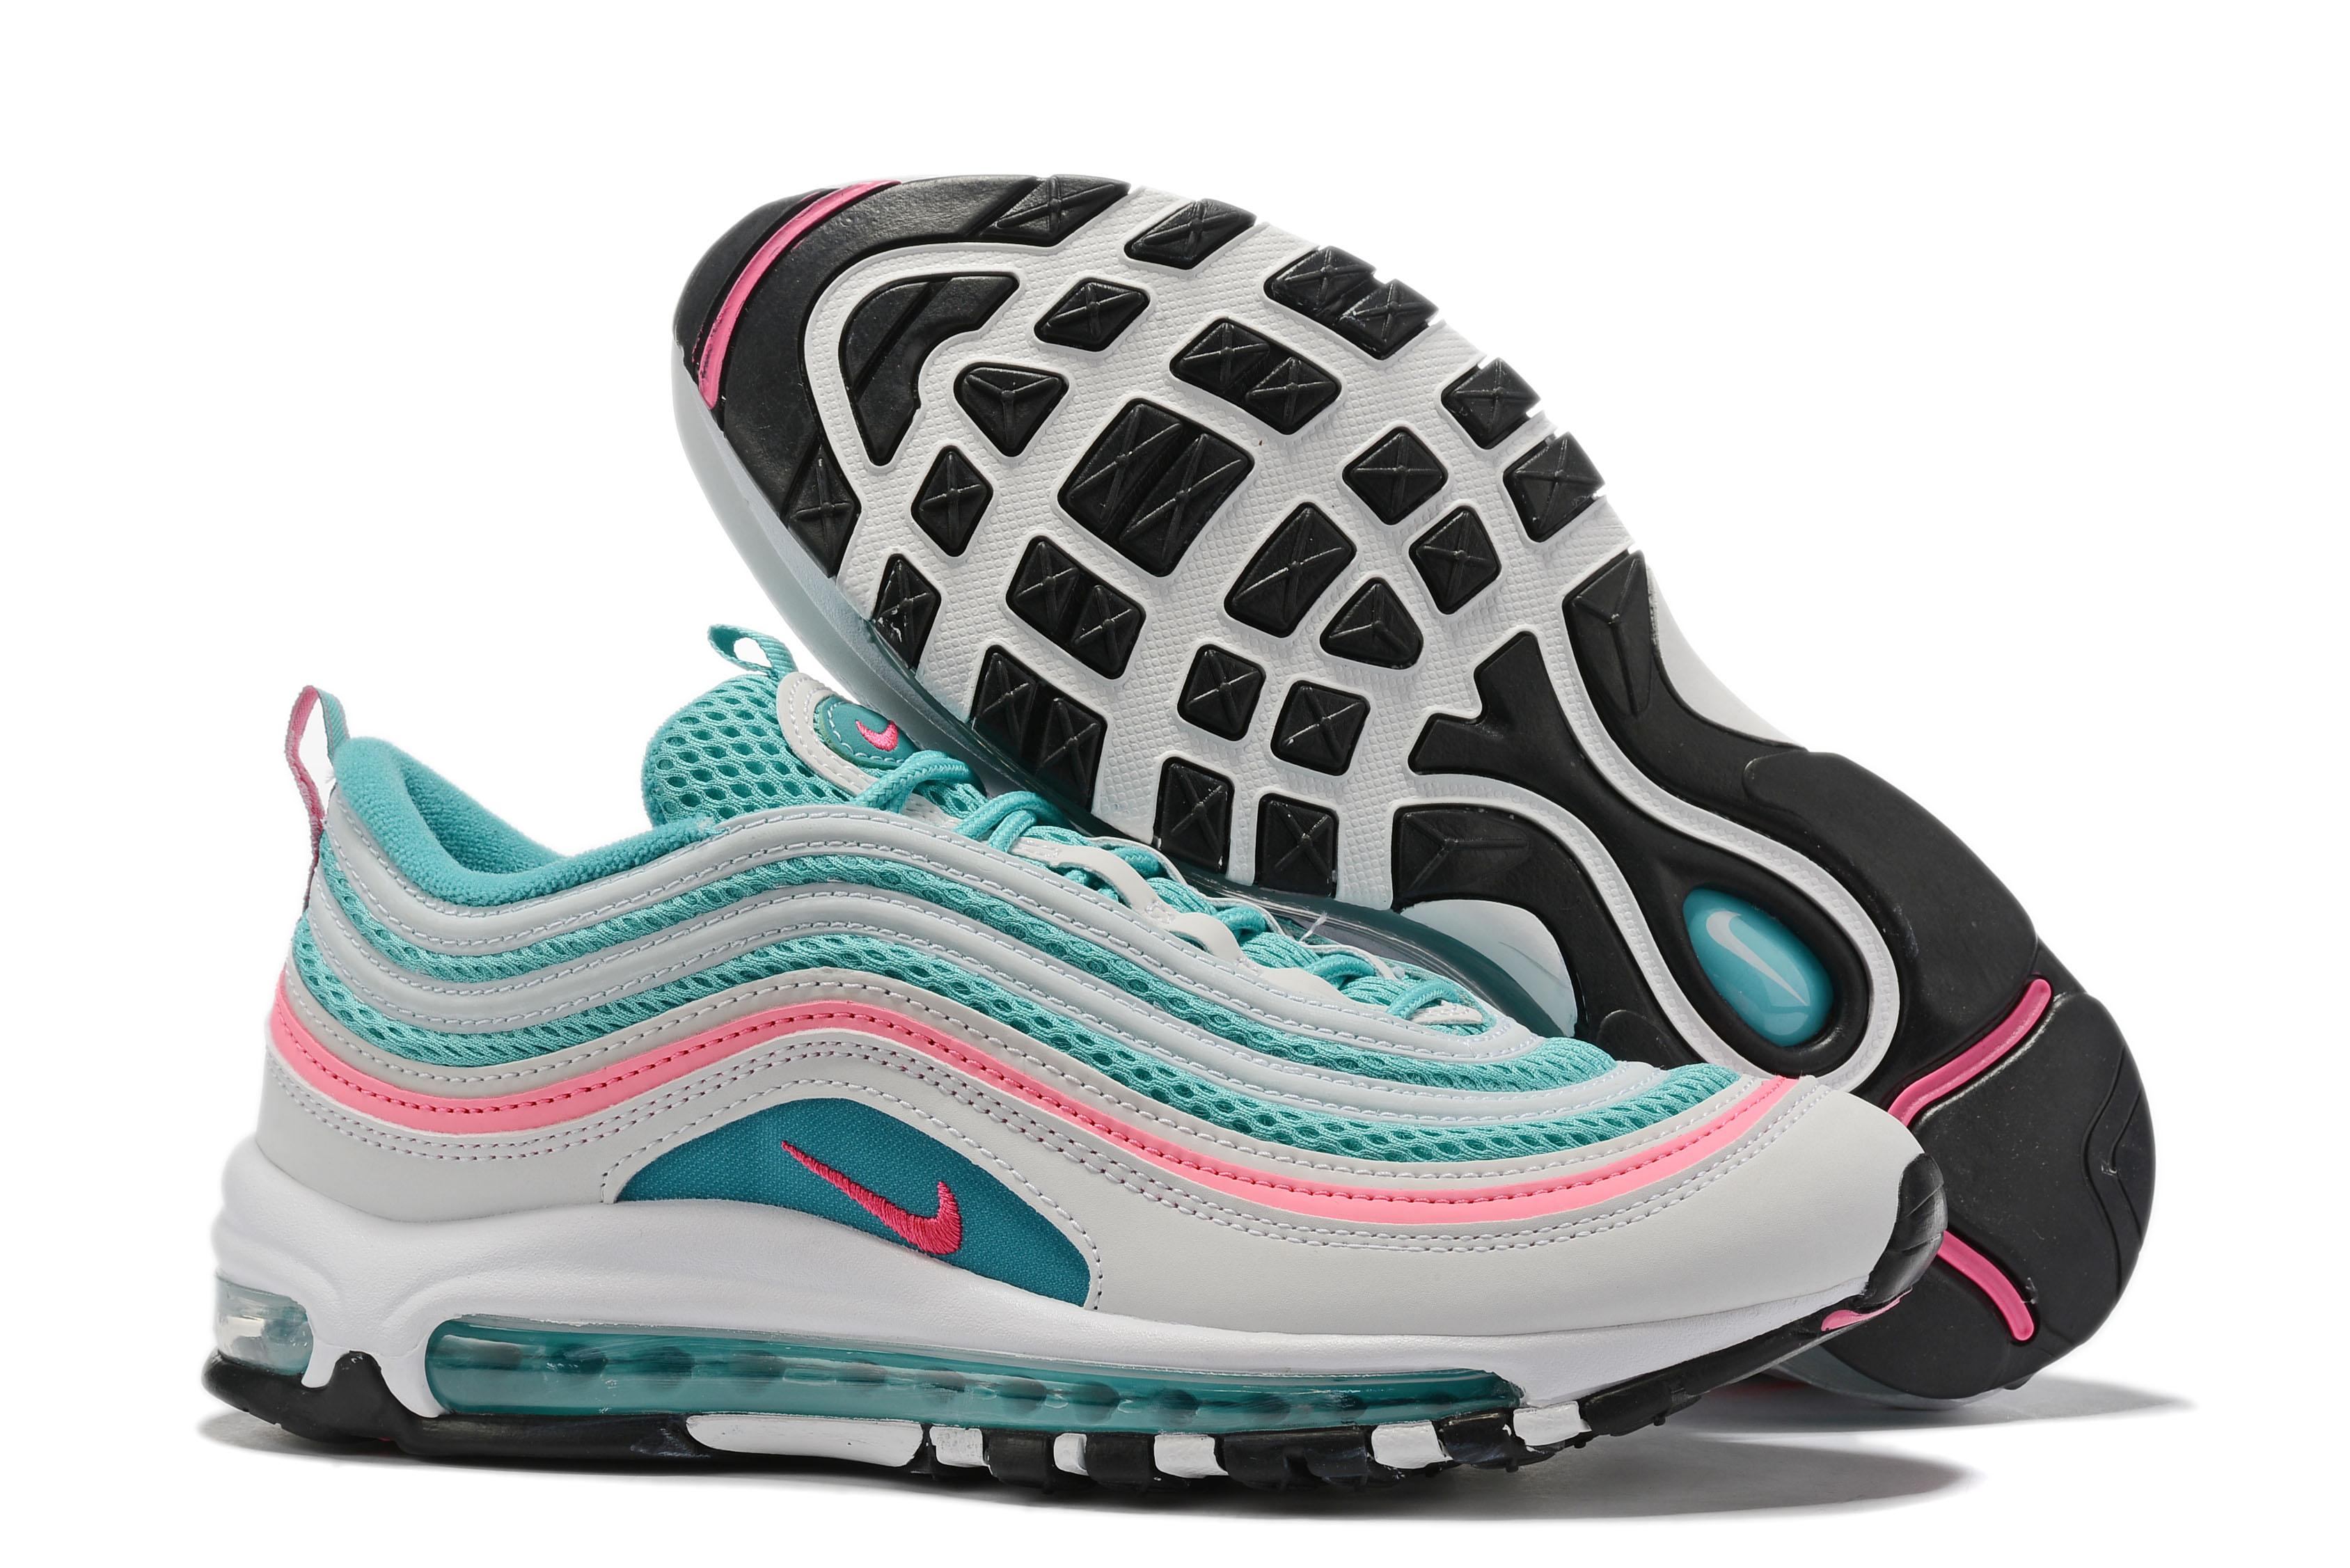 Men's Running weapon Air Max 97 Shoes 015